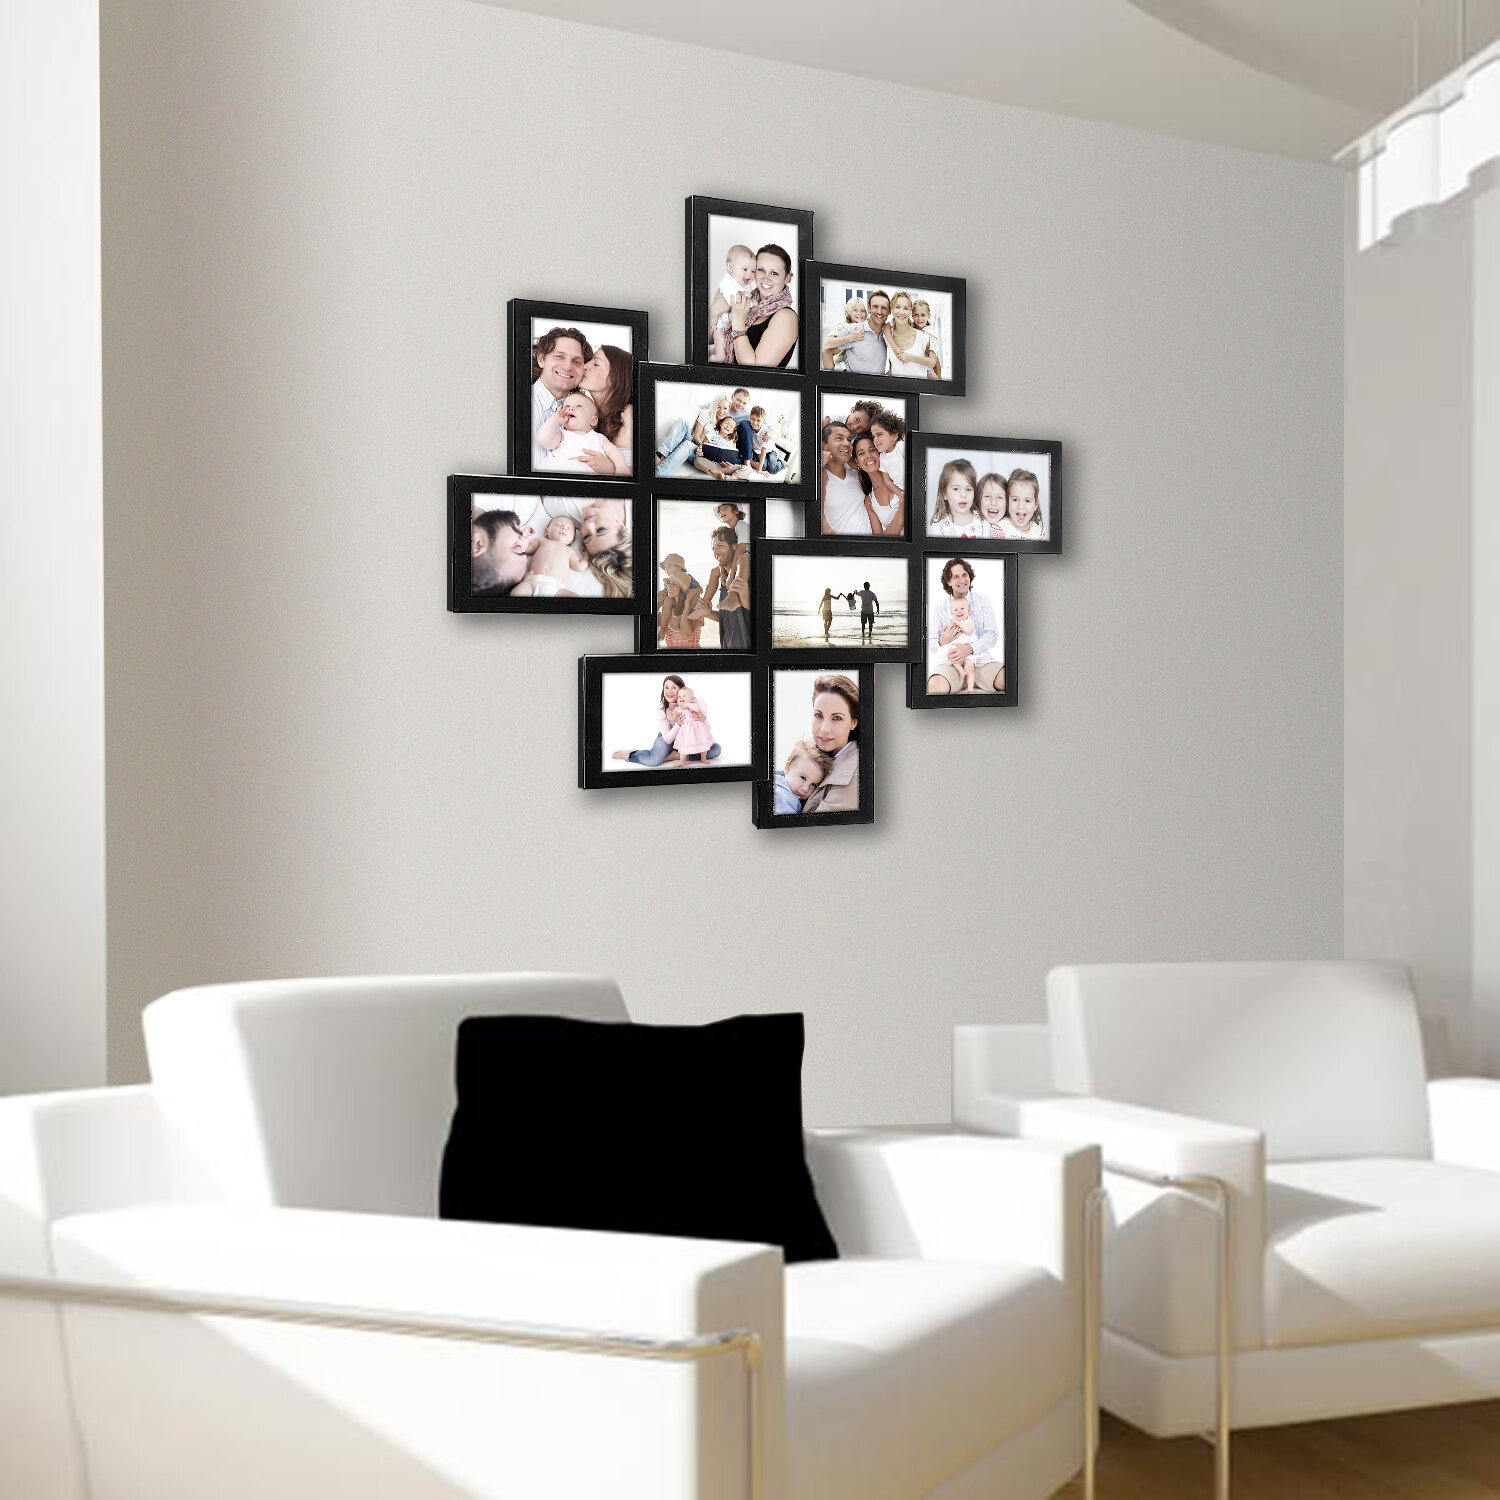 Collage Picture Frames You Ll Love In 2021 Wayfair